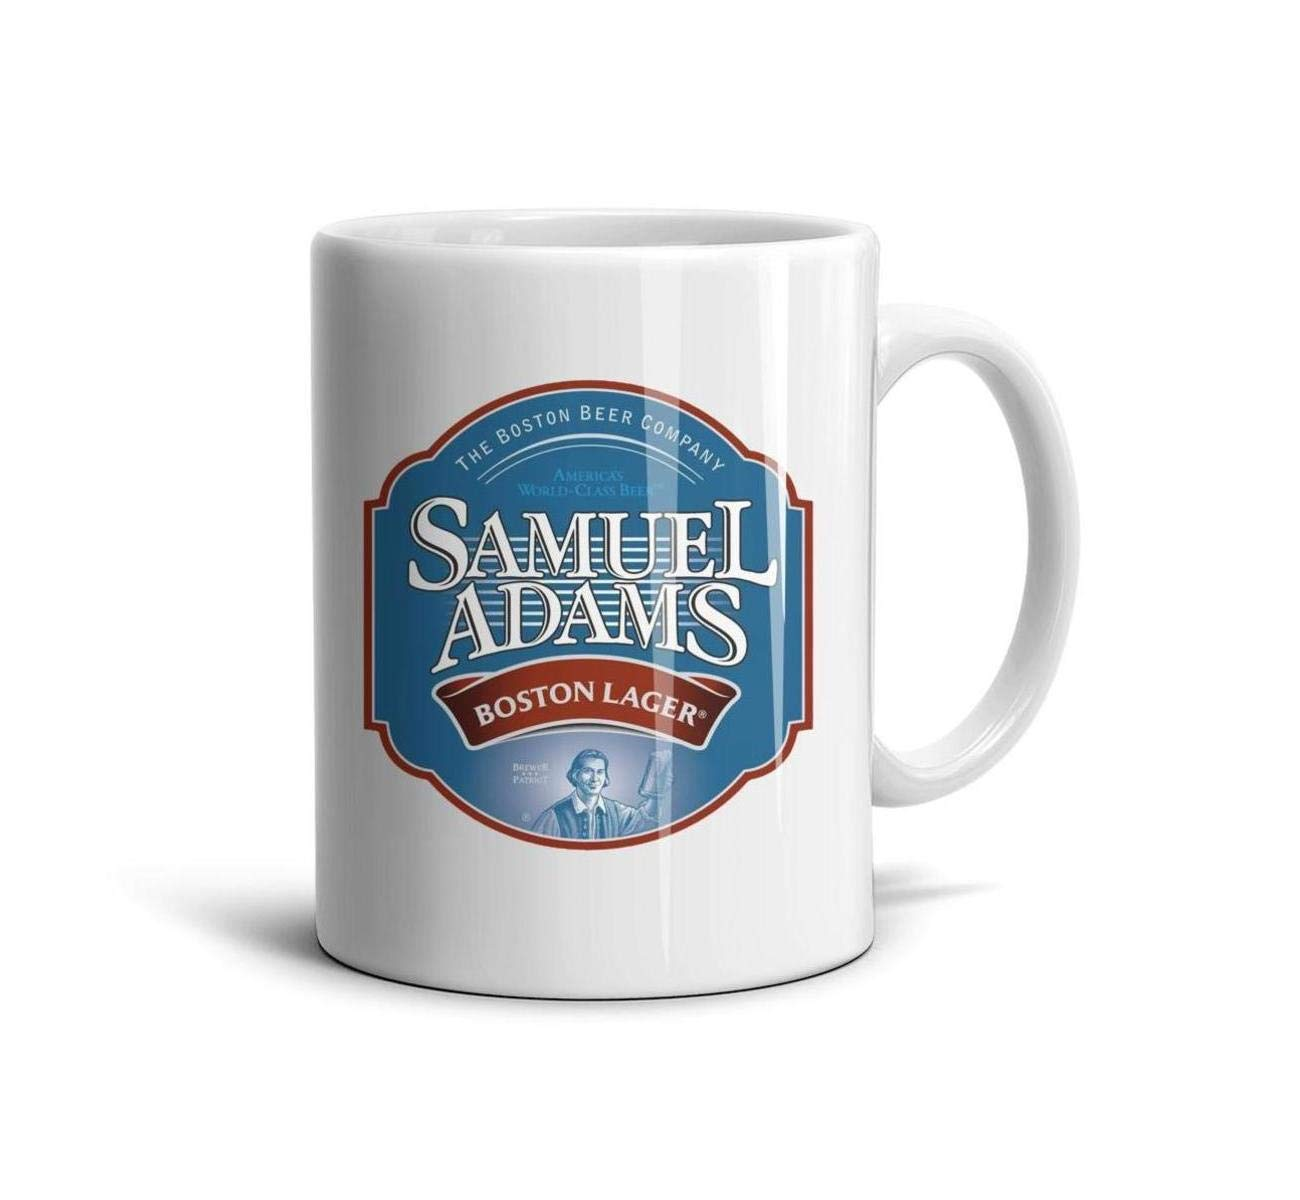 HIYITUTA Samuel-Adams-Logo Mugs Design Cute Mug 11 Oz Office Mugs Dad Mom